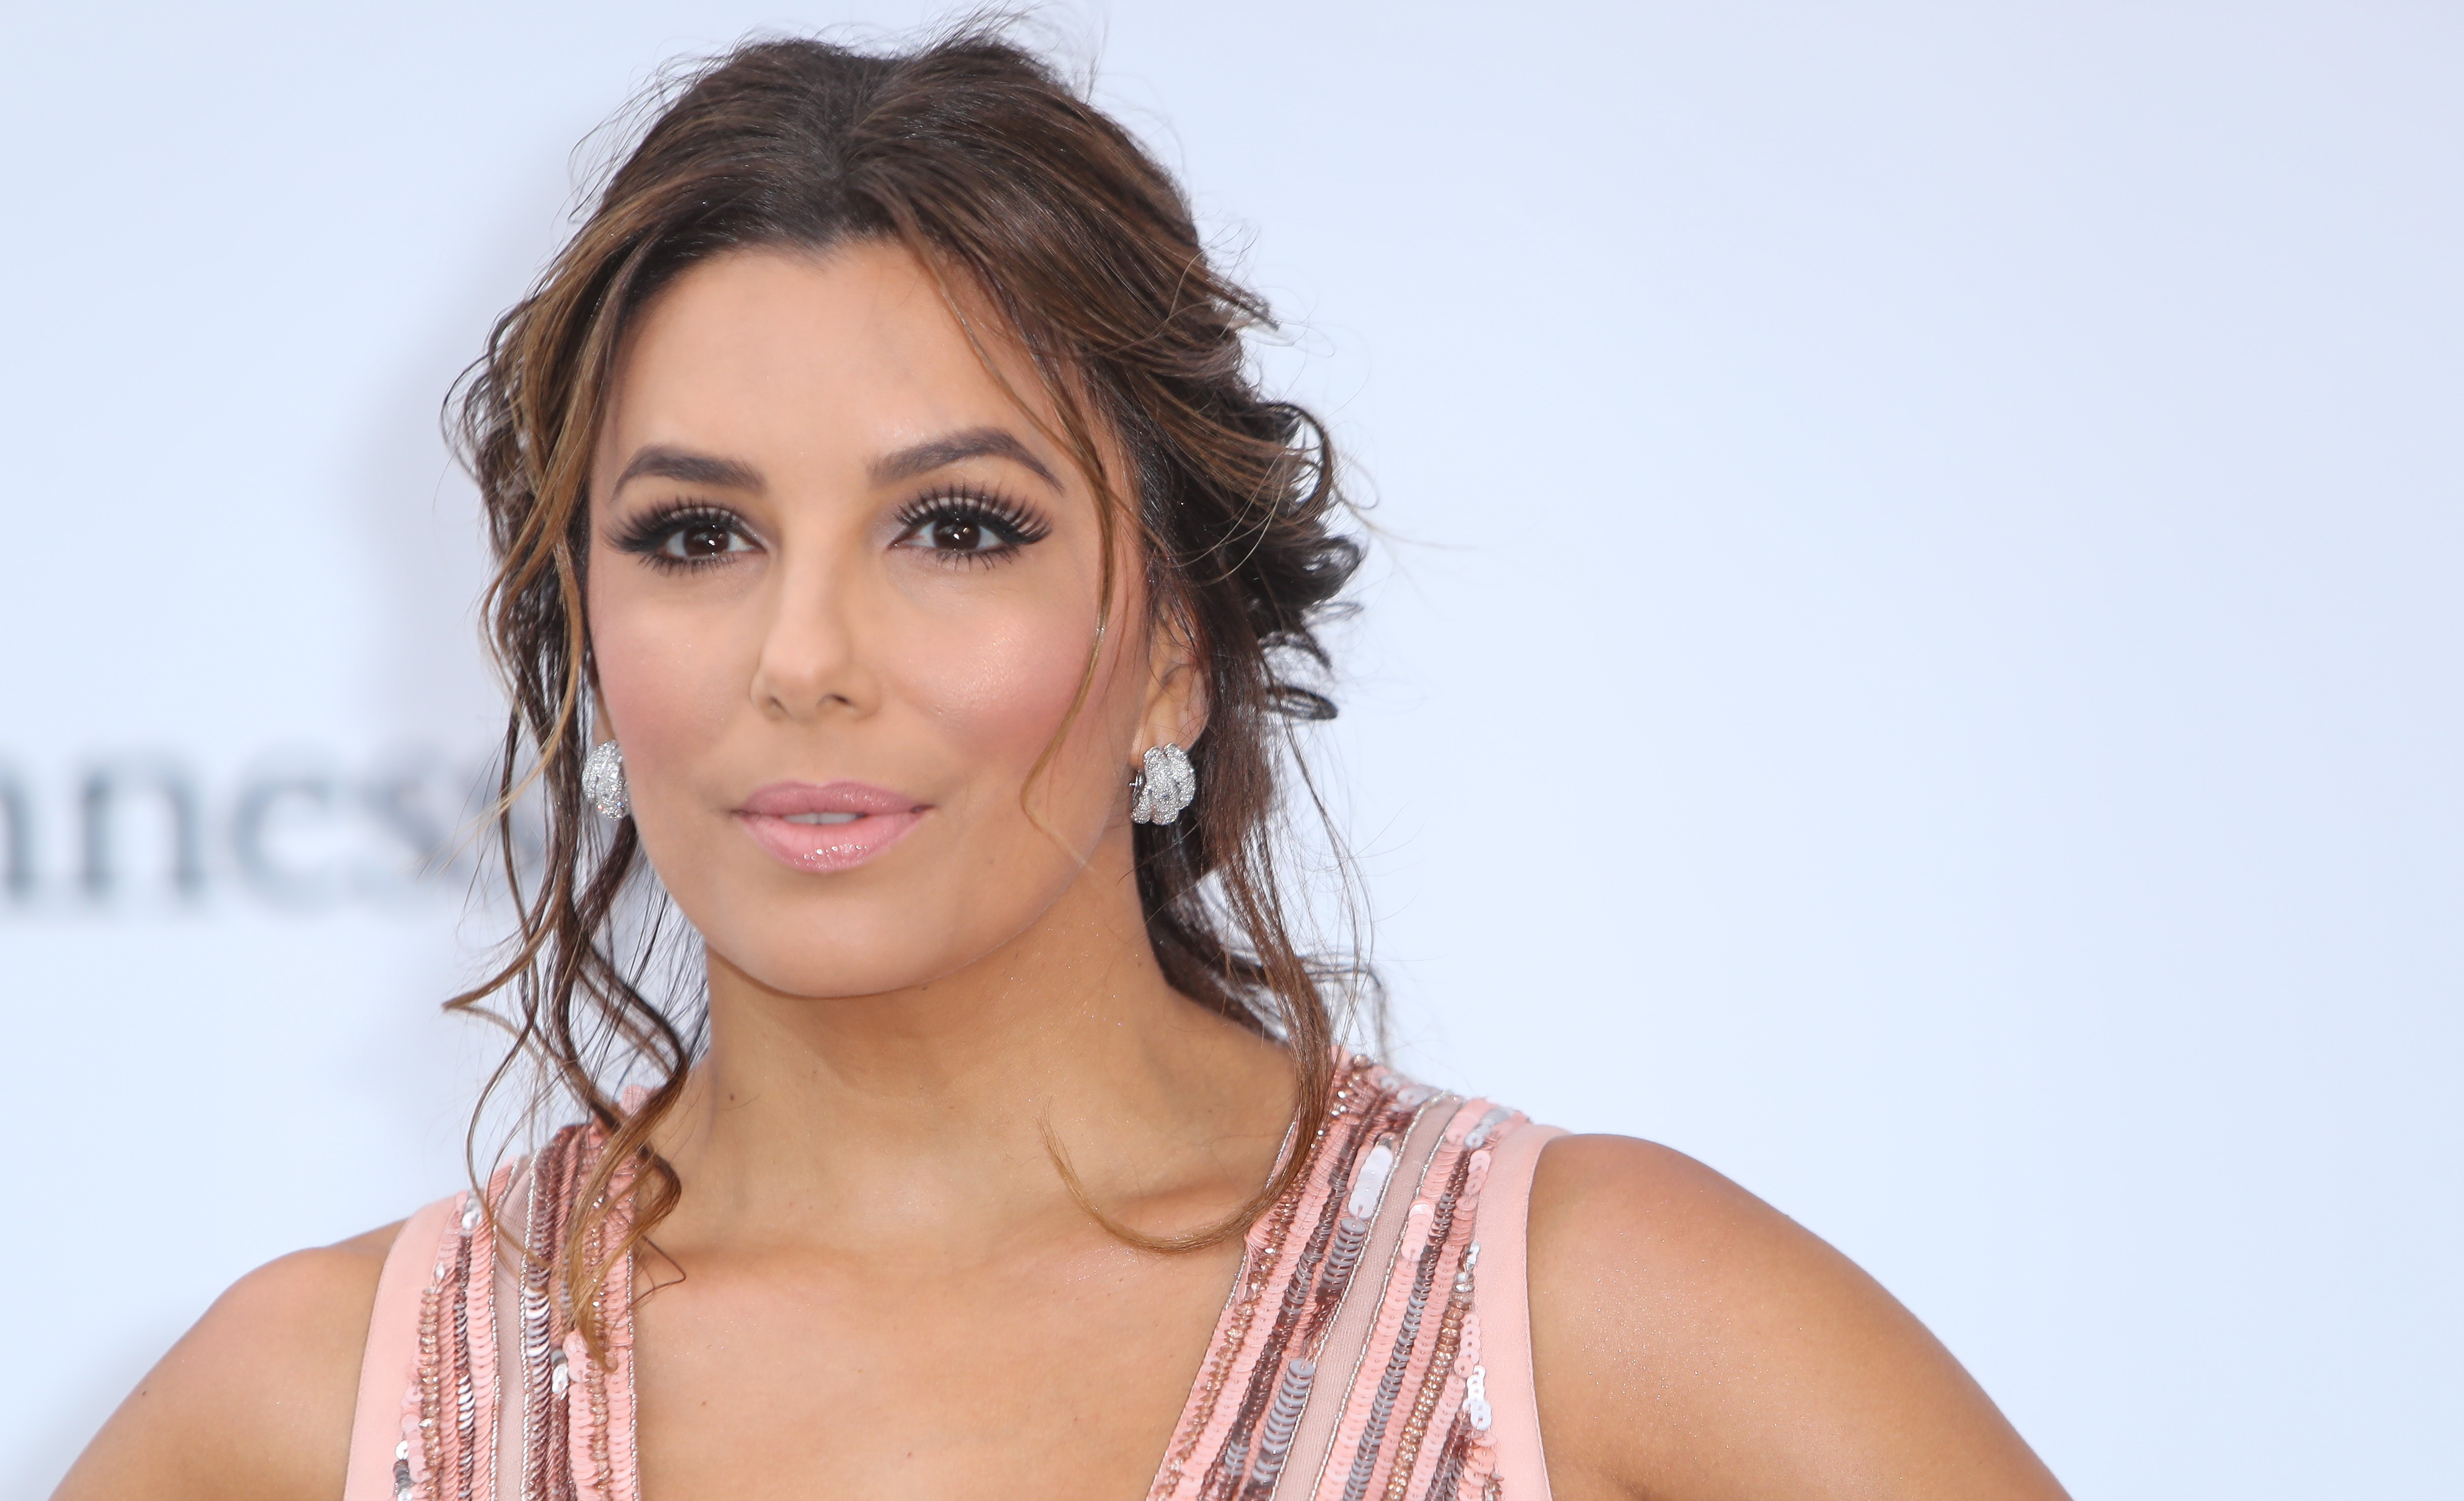 42-year-old Eva Longoria was wearing a sexy black suit for a photo shoot 02.08.2017 37